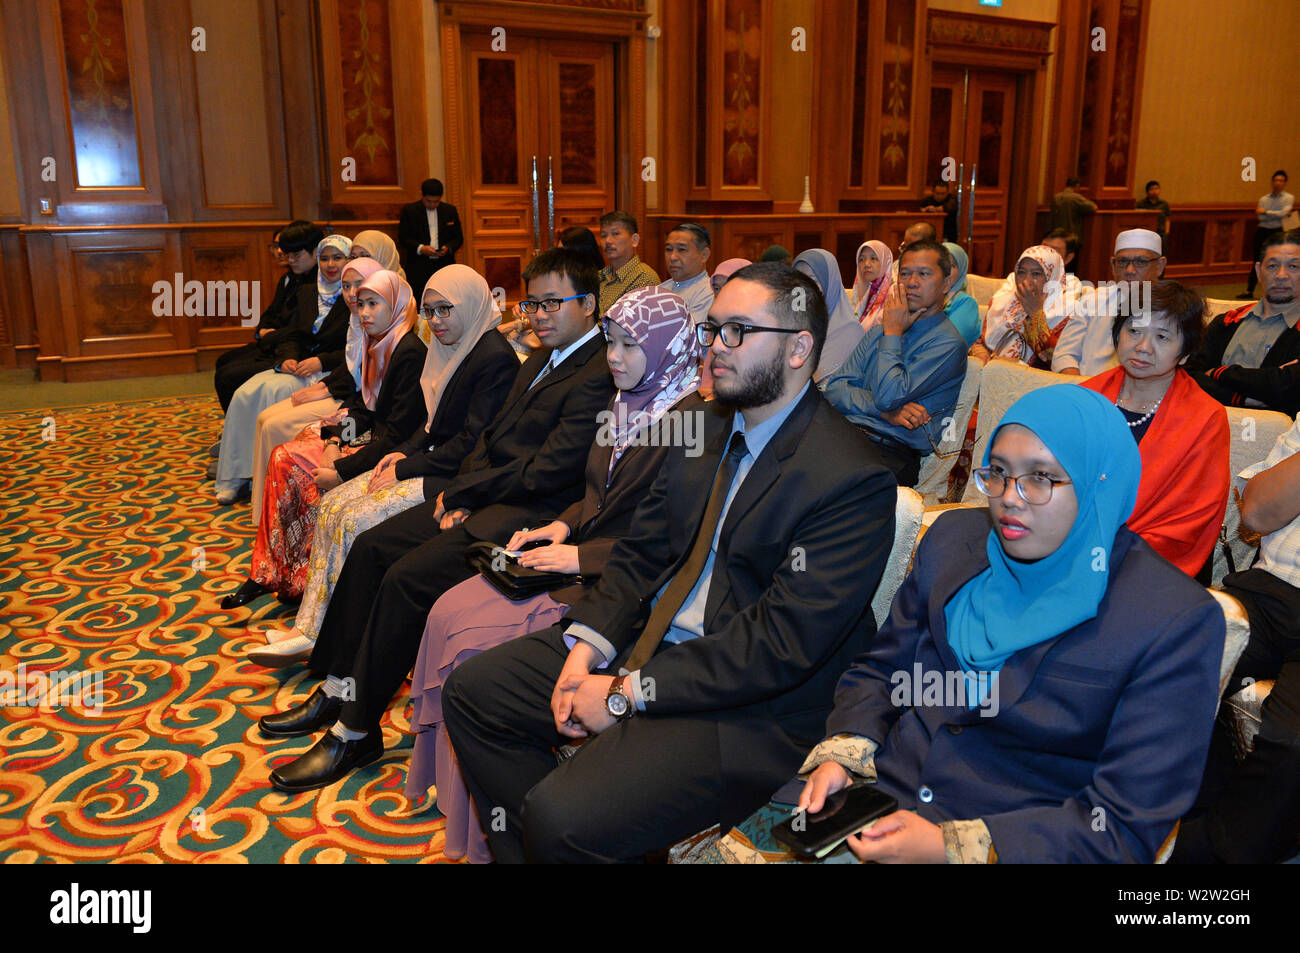 (190710) -- BANDAR SERI BEGAWAN, July 10, 2019 (Xinhua) -- Scholarship recipients and their parents attend a graduation ceremony for the fifth batch of 11 scholarship students under the Joint Chemical and Process Engineering Scholarship Program provided by Hengyi Industries Sdn Bhd, in Bandar Seri Begawan, capital of Brunei, July 10, 2019. Hengyi Industries Sdn Bhd, a China-Brunei joint venture, hopes to provide at least 50 percent of over 2,000 new jobs to local Bruneians in the second phase of Pulau Muara Besar (PMB) refinery and petrochemical plant, Li Peng, director of General Affairs of H - Stock Image